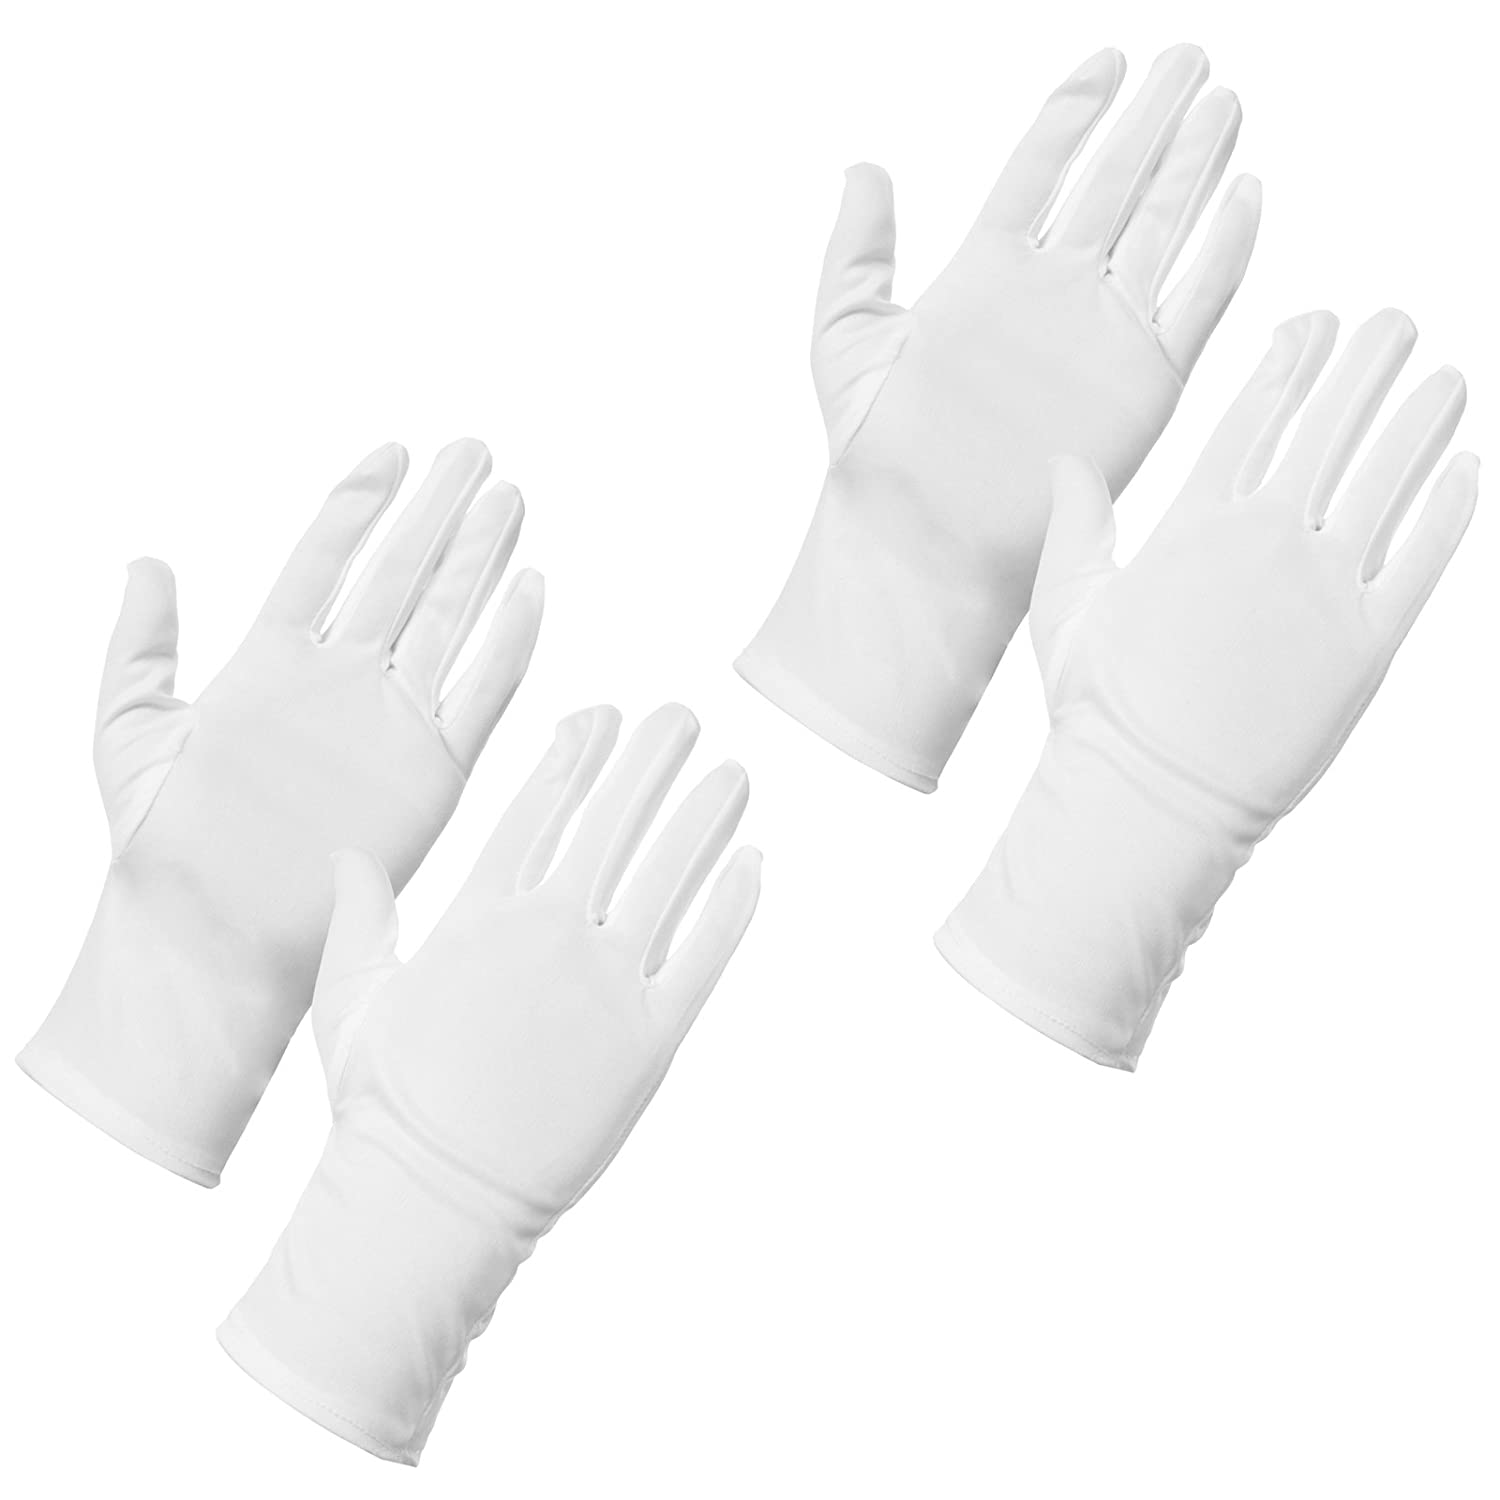 Black cotton gloves for eczema - Amos Dermatological Moisturising Cotton Gloves Dry Skin Hands Eczema Cream Absorption Spa Sleep Beauty Gloves 2 Pairs Amazon Co Uk Health Personal